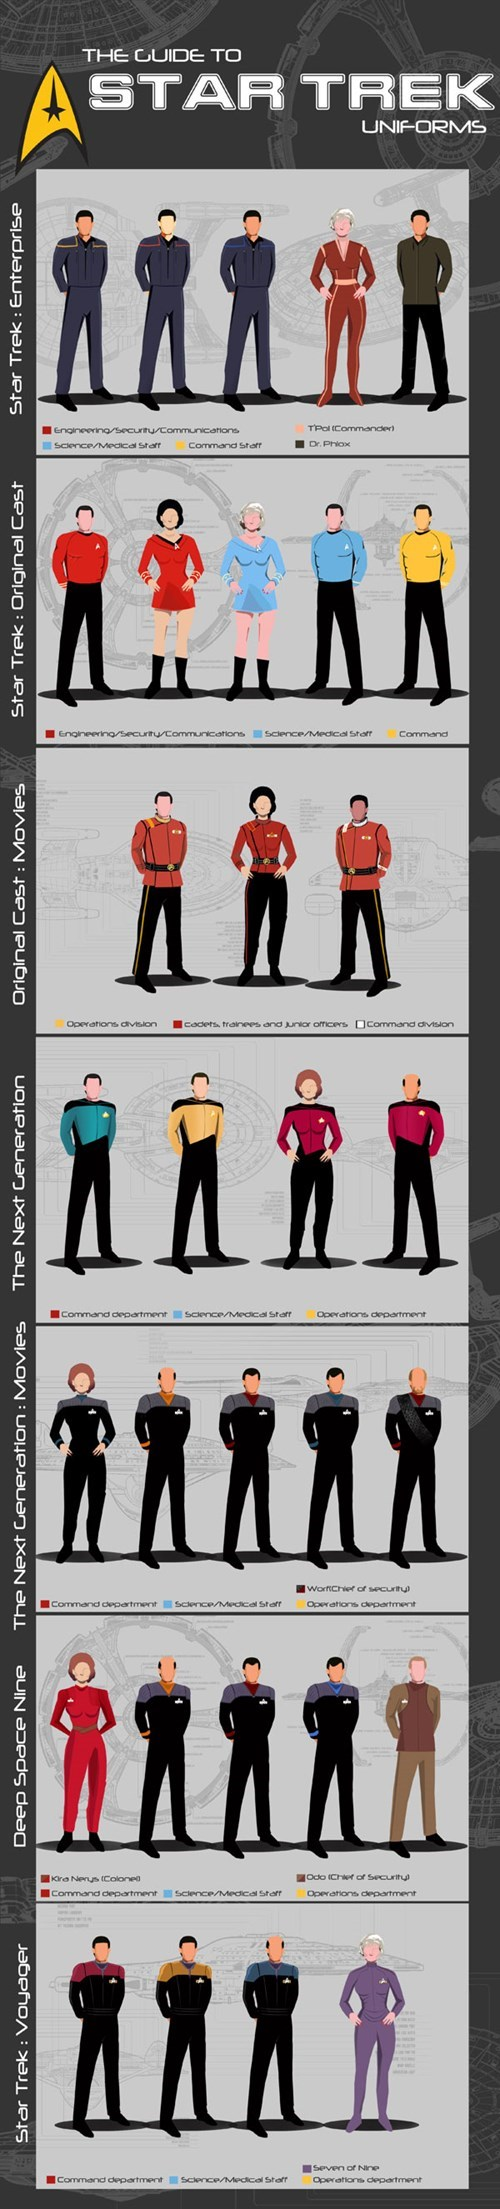 uniforms info graphic generations Star Trek - 7859716608